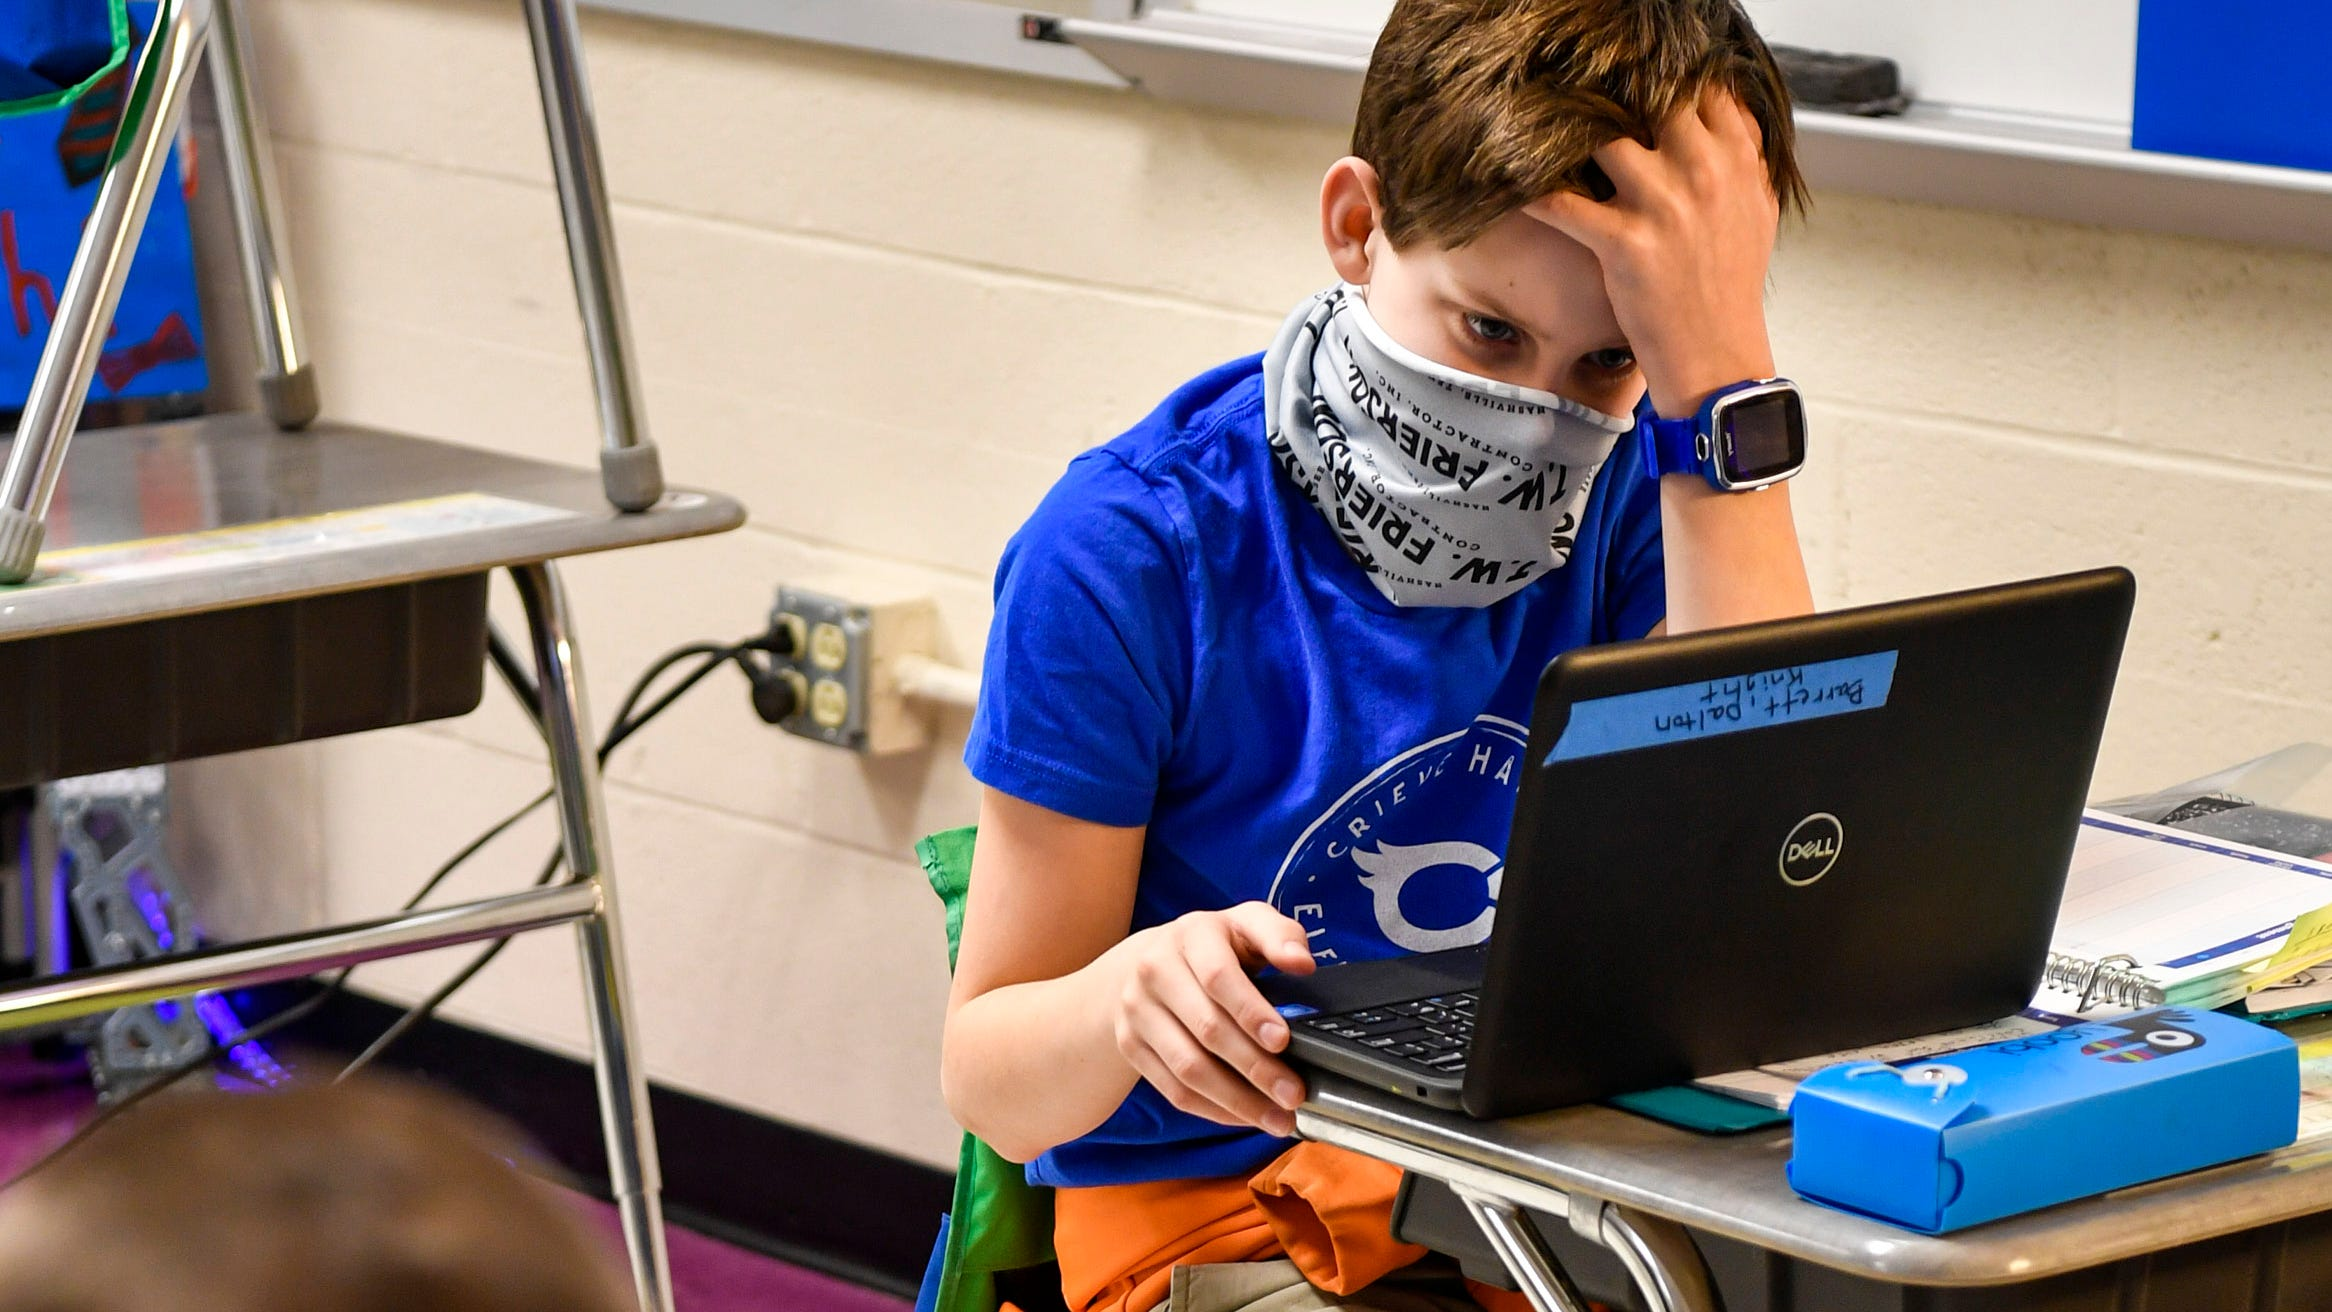 Fourth-grader Barrett Dalton struggles to connect his computer to Wi-Fi on day one to return to in-person learning at Crieve Hall Elementary School on Tuesday, February 9, 2021 in Nashville, Tenn.  Kindergarten to Grade 4 and Kindergarten returned to elementary schools for in-person learning for the first time since Thanksgiving.